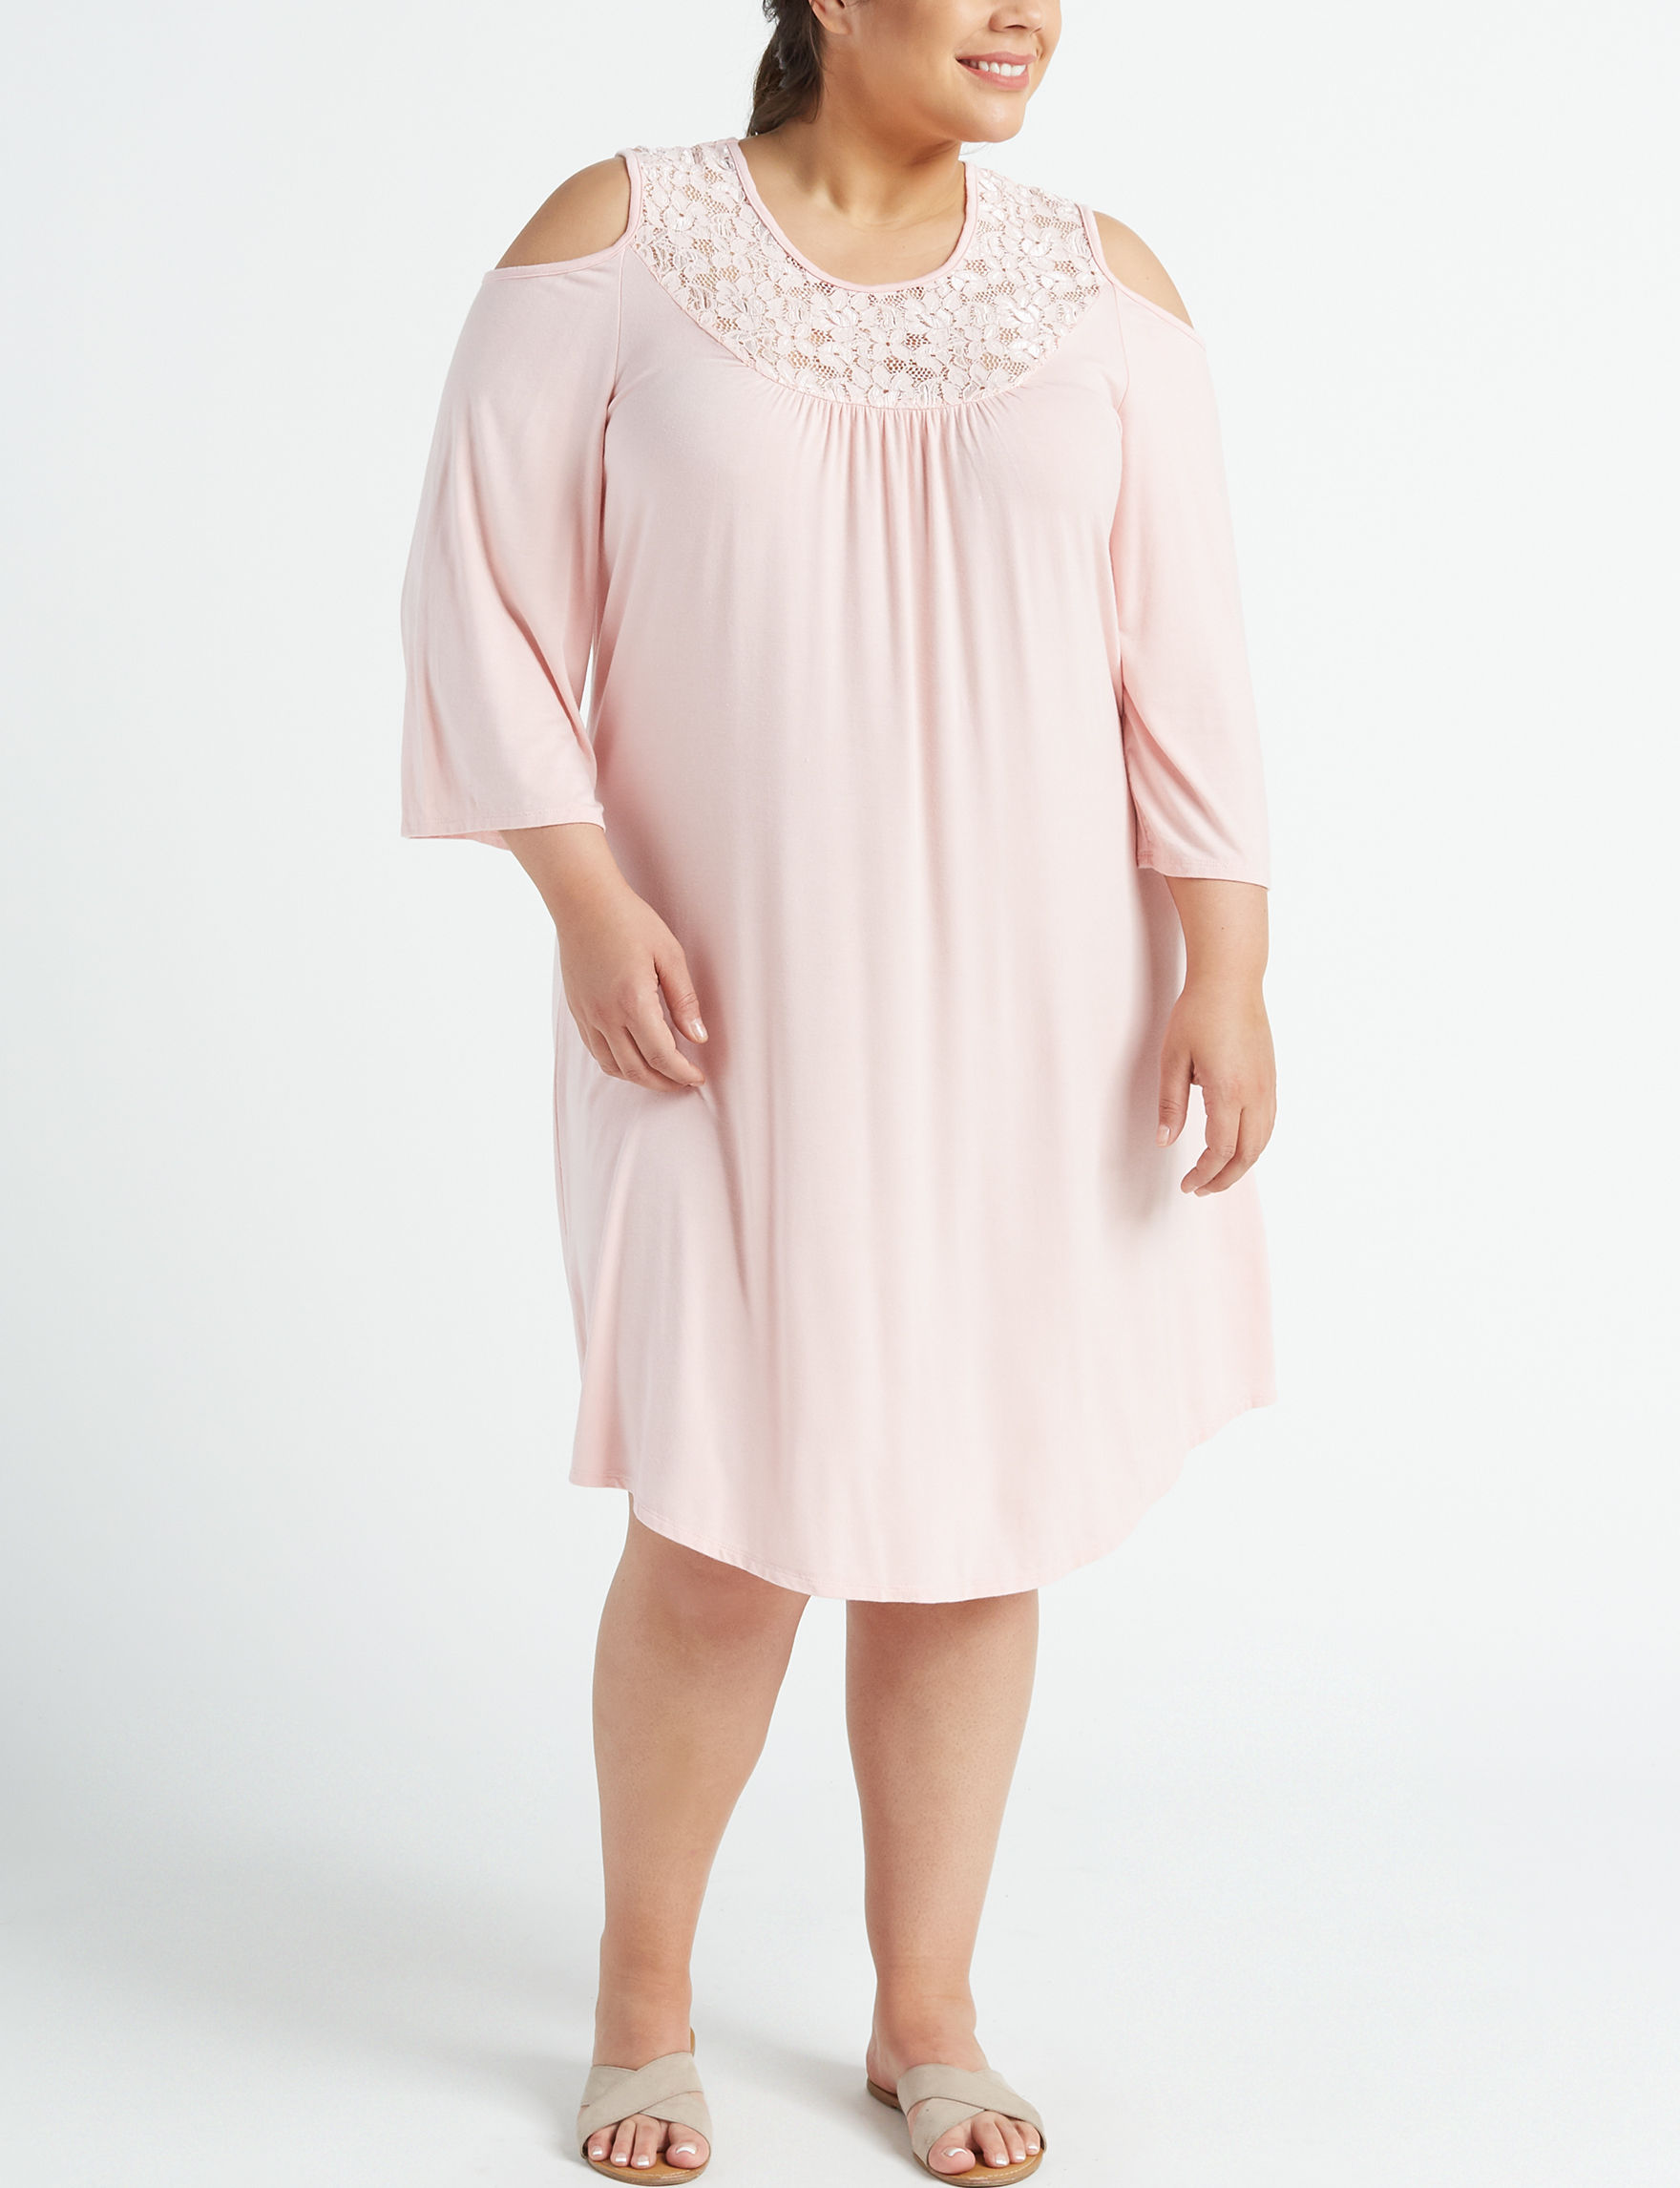 Wishful Park Pink Everyday & Casual Shift Dresses